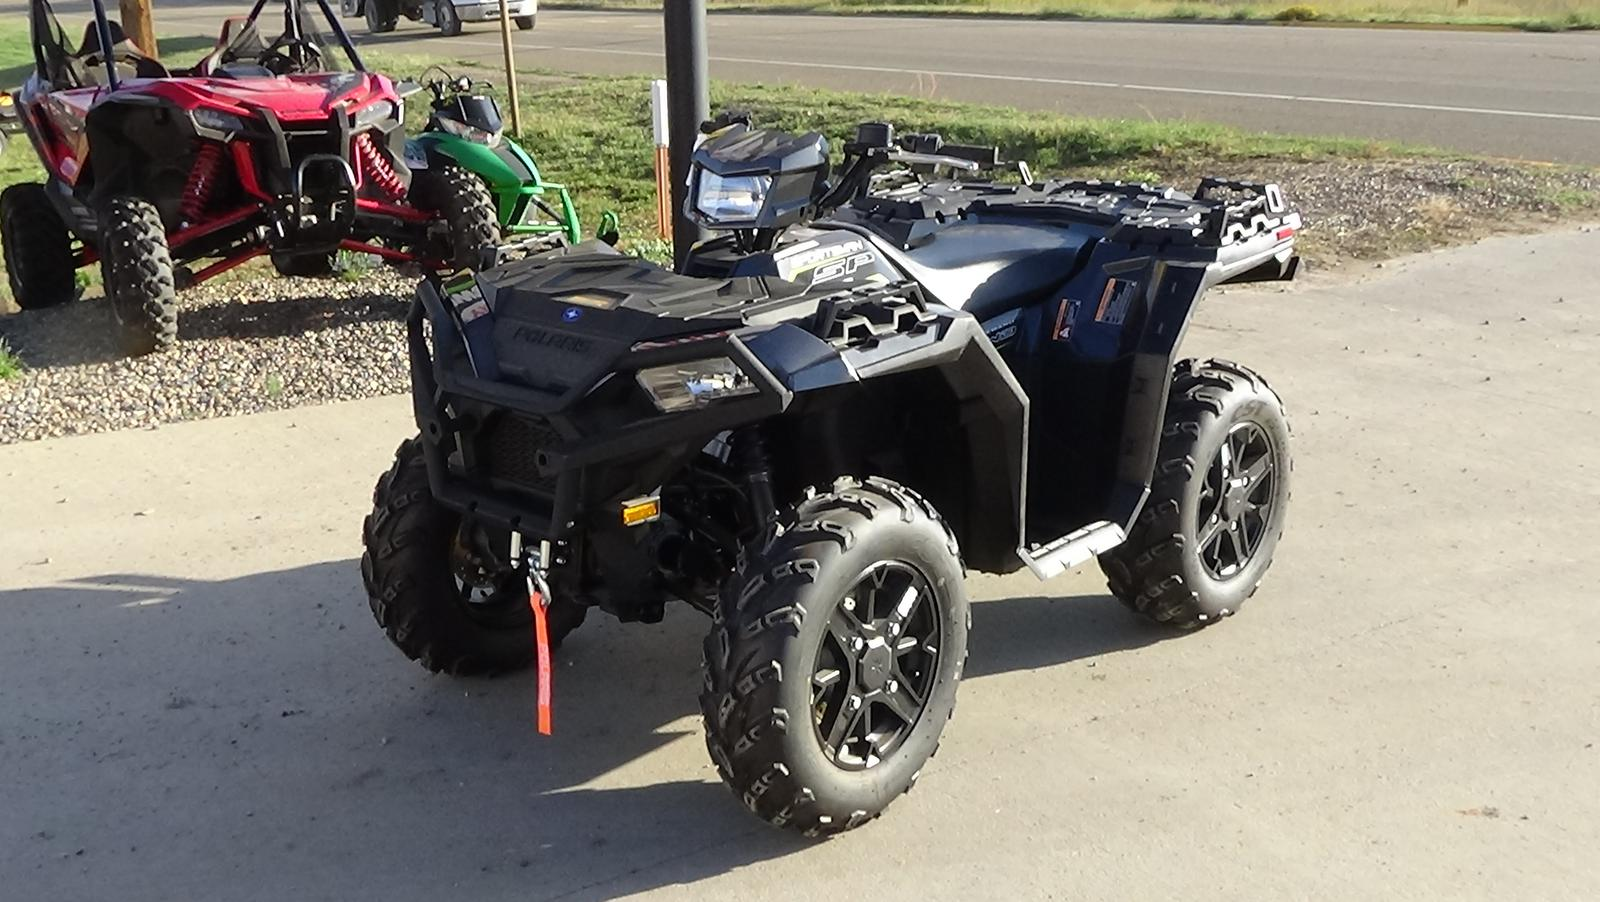 2019 polaris industries sportsman� 850 sp premium - magnetic gray metallic